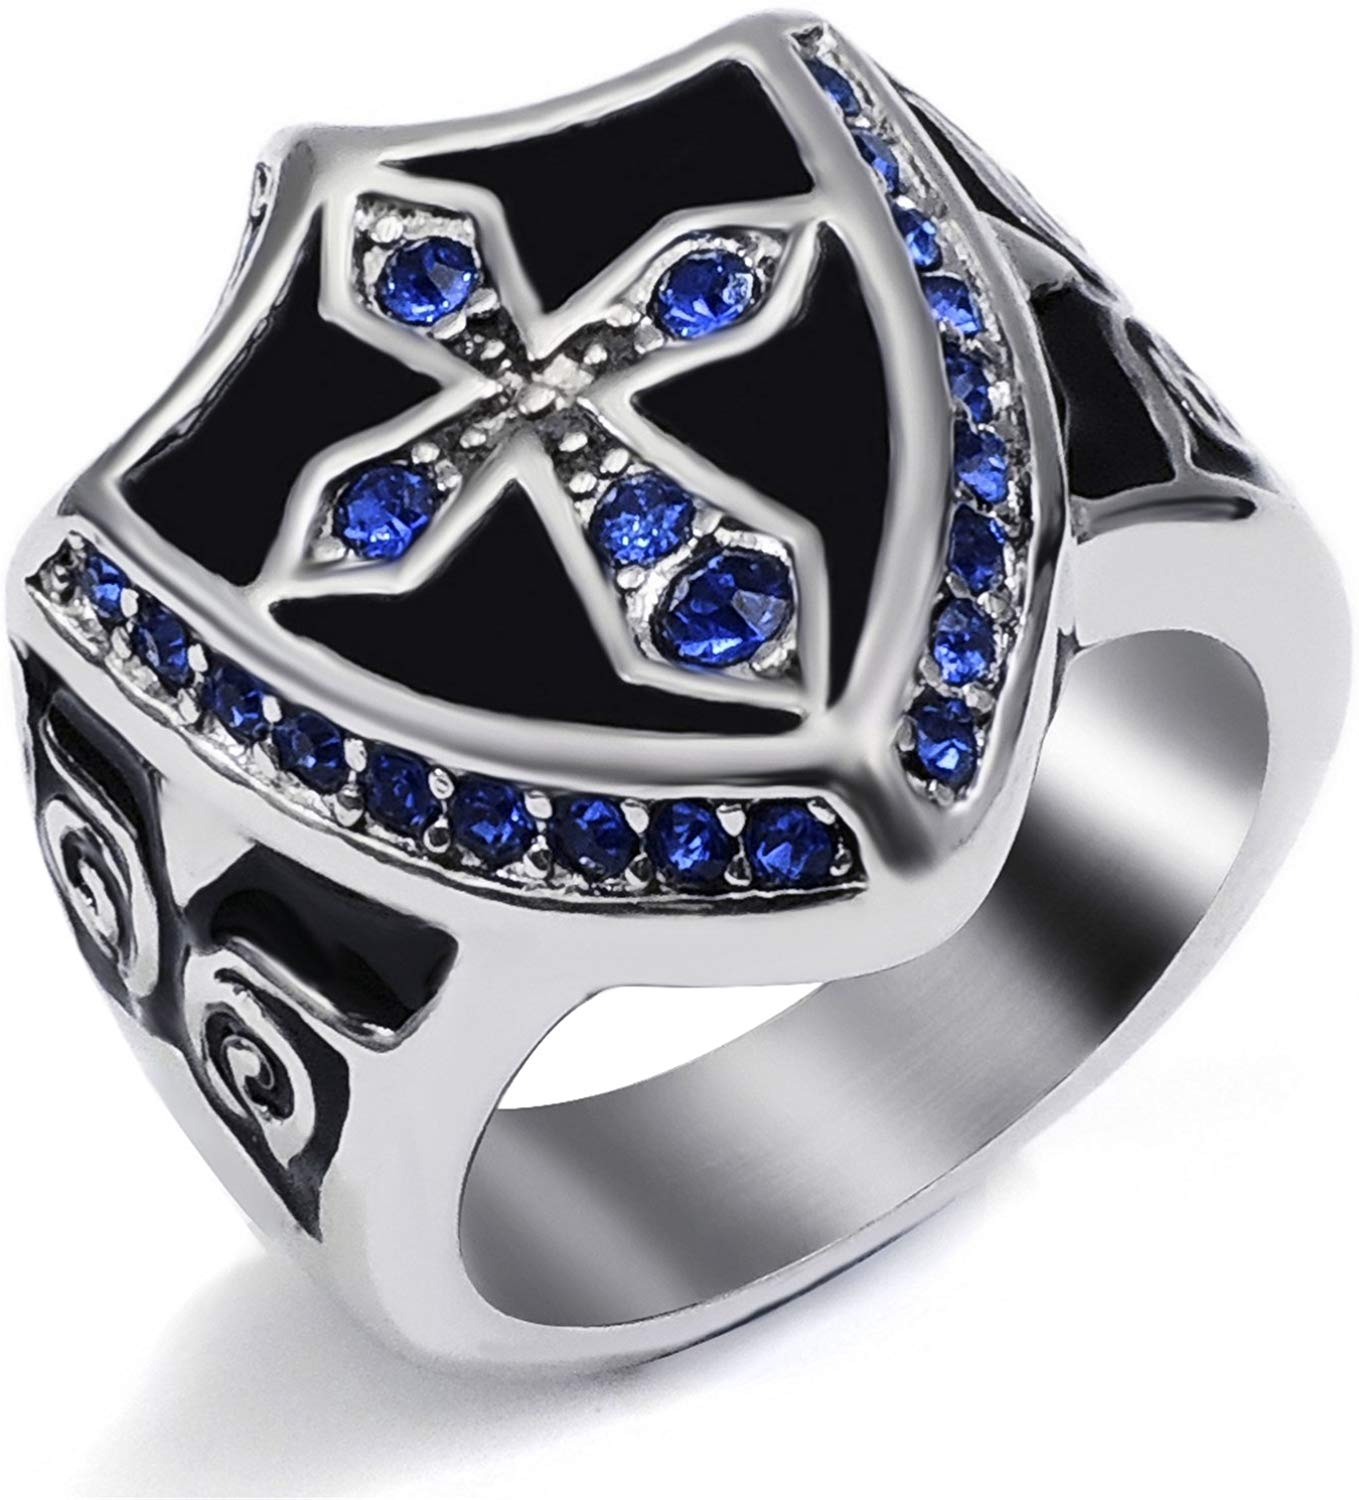 Cross Noble Knight Stainless Steel Ring - SolomonsOrder